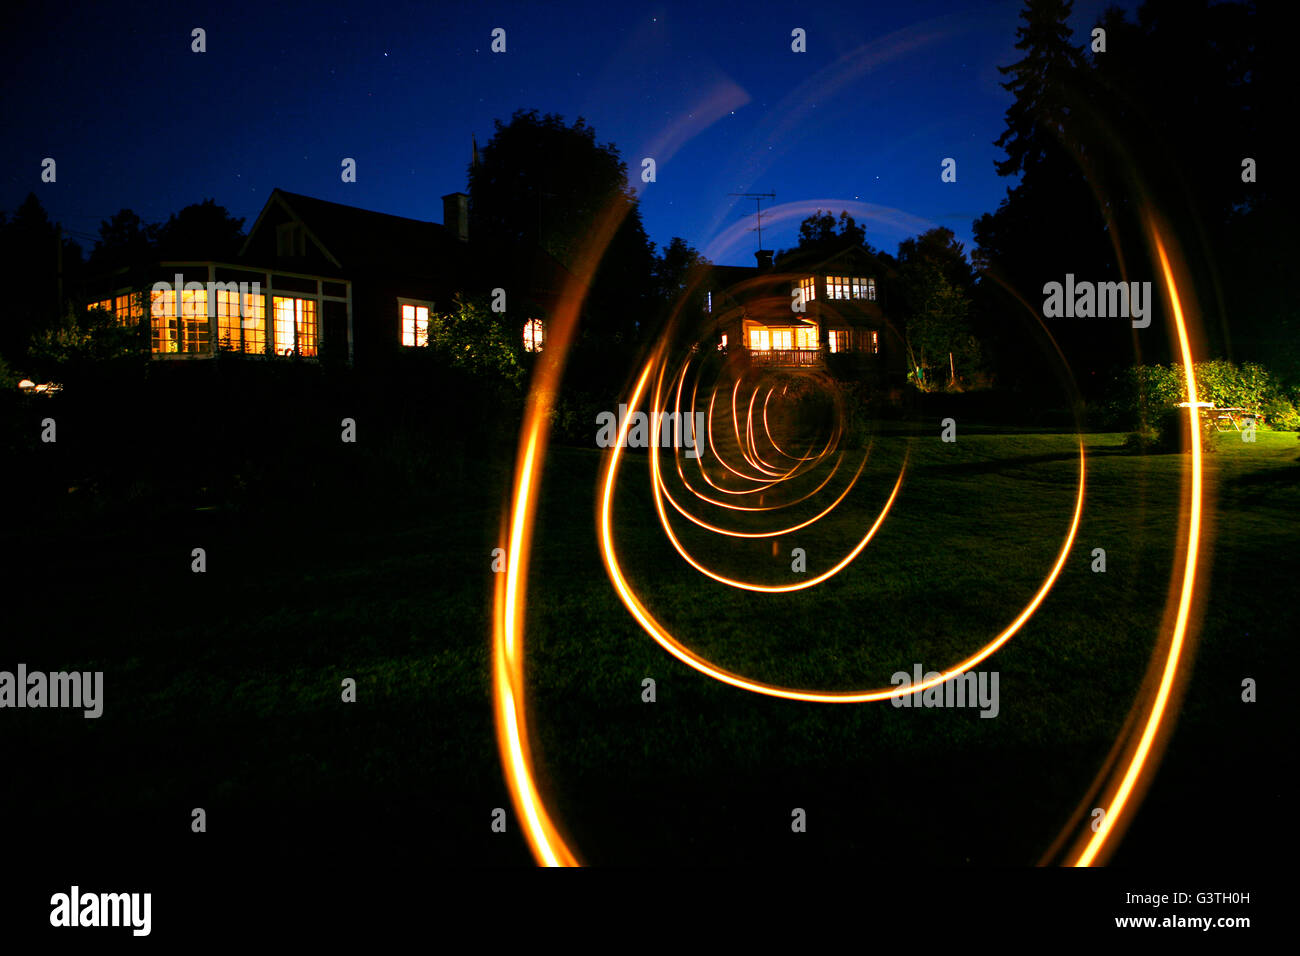 Sweden, Uppland, Loparo, View of spiral light trail in back yard - Stock Image